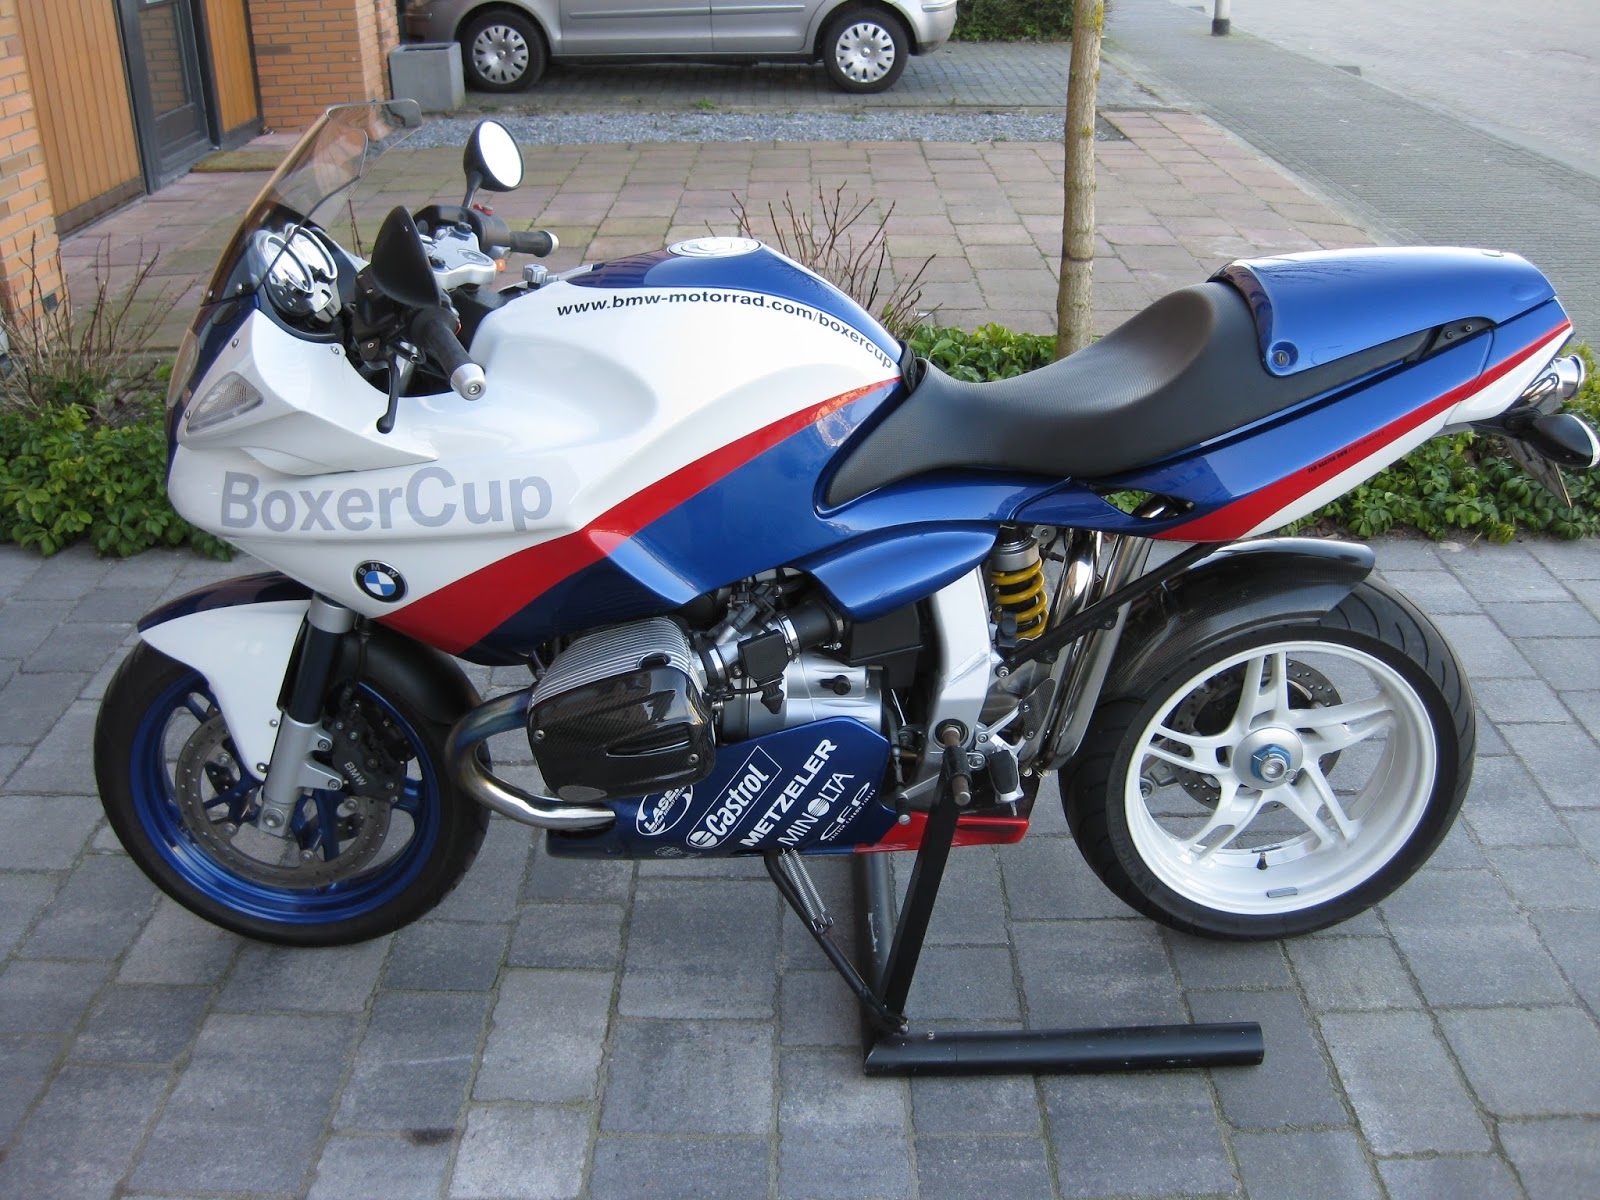 dd motorcycles: bmw r1100s boxercup tuning